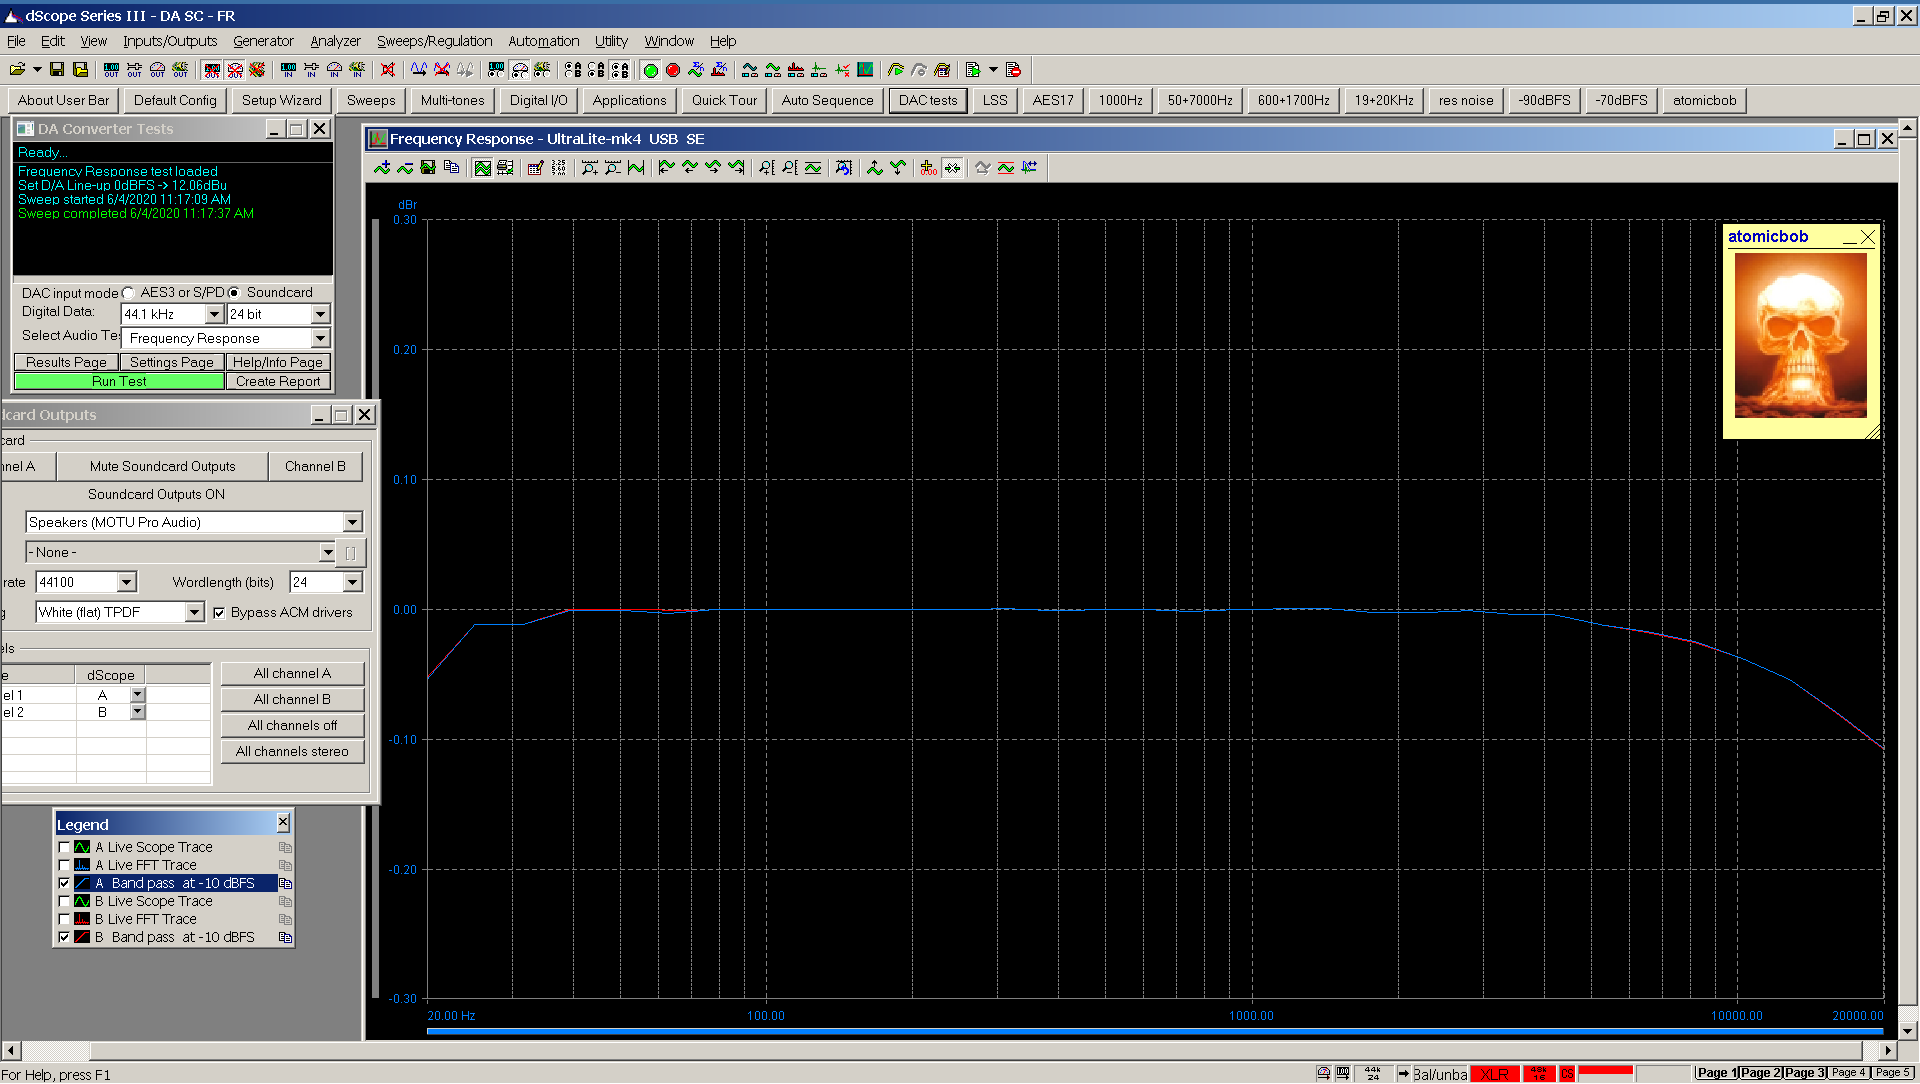 20200604 UltraLite-mk4 frequency response zoom FFT WDM SE.png